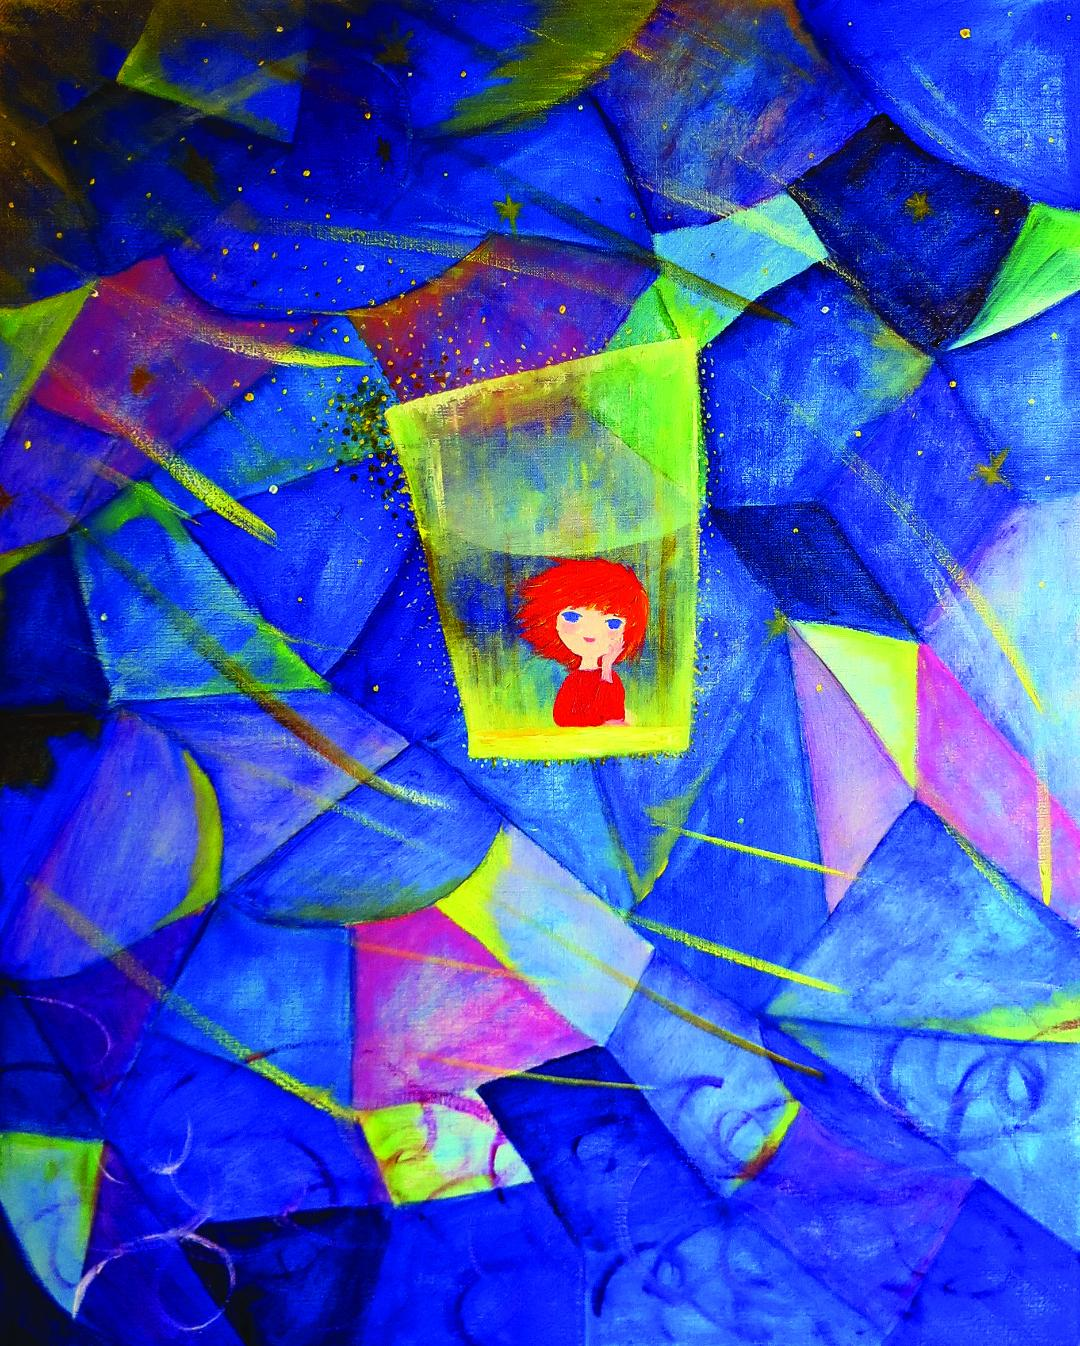 Abstract painting with a red-haired child-like figure in the center, blue fragmented shapes and yellow stars throughout the background